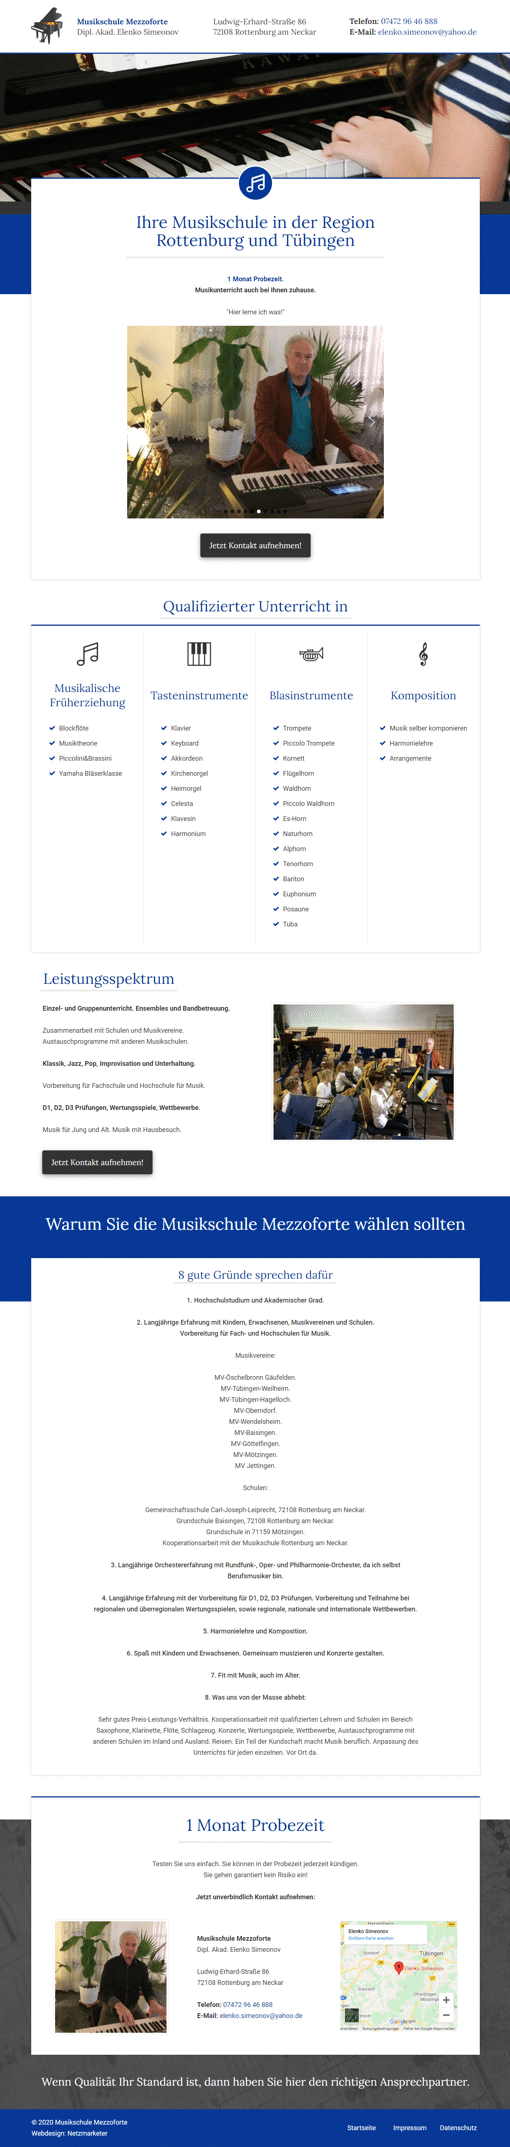 Simeonov - Website